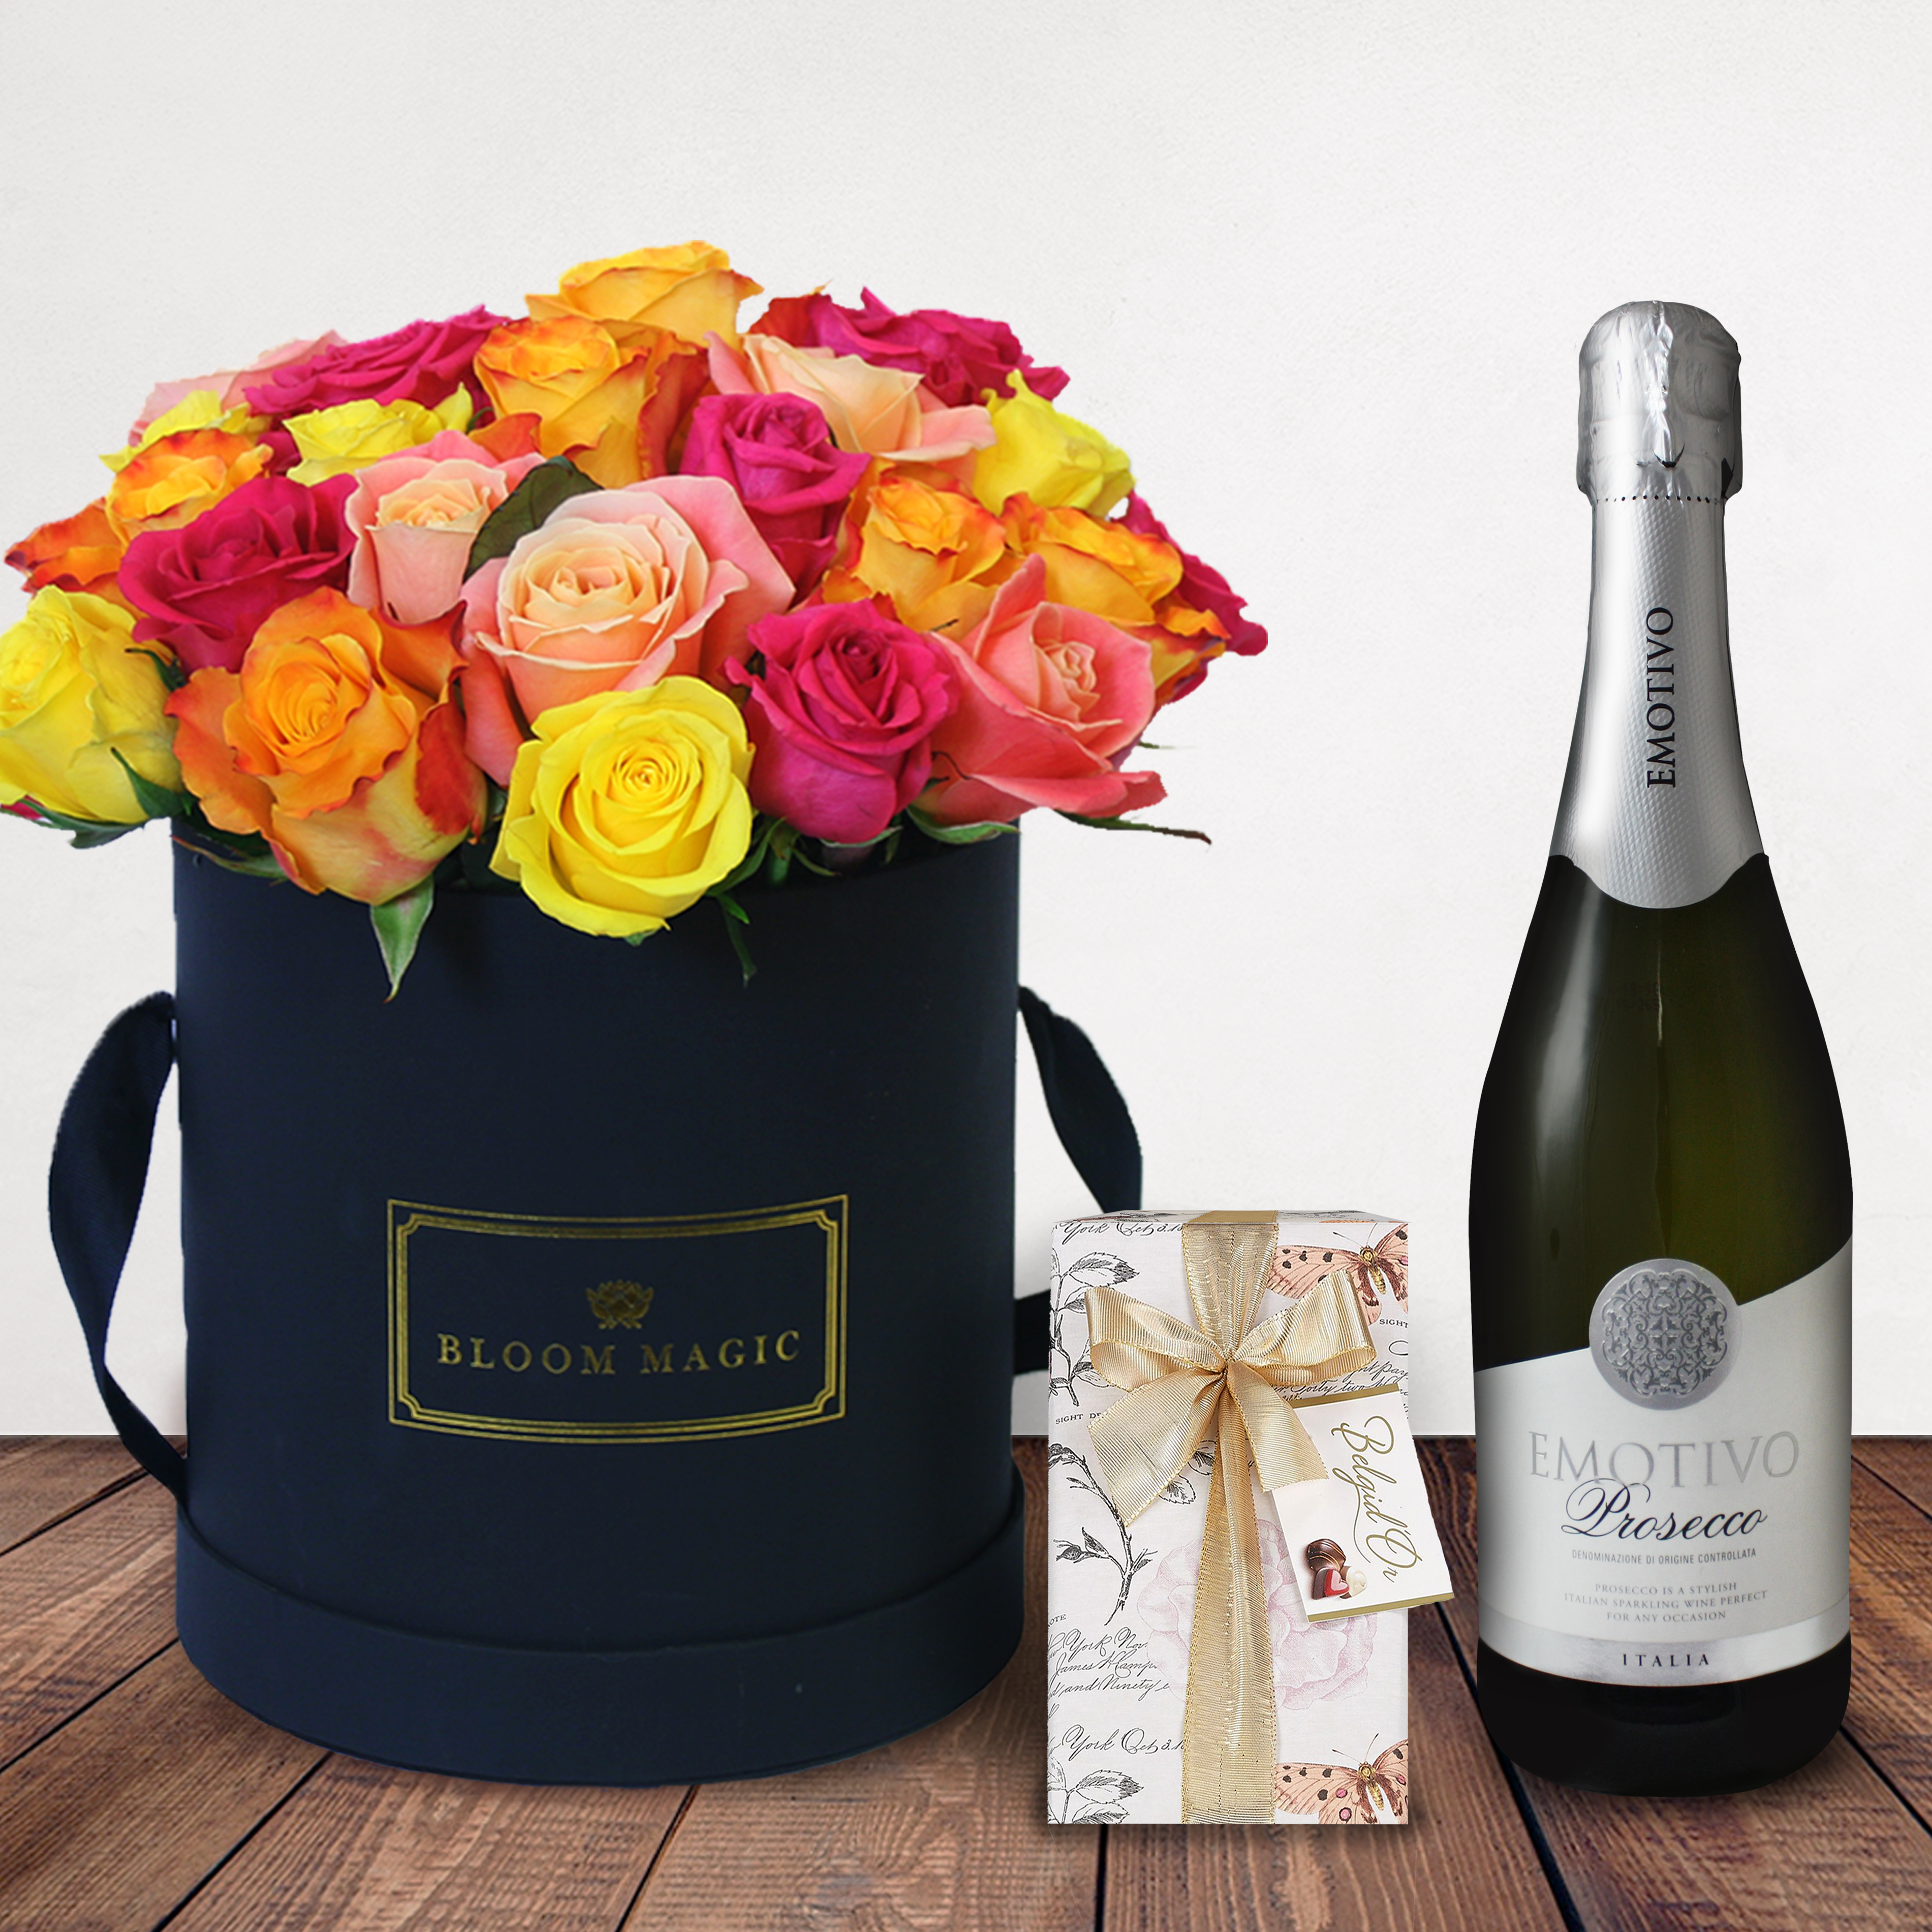 Bloom Magic - Fiery Romance Gift Set